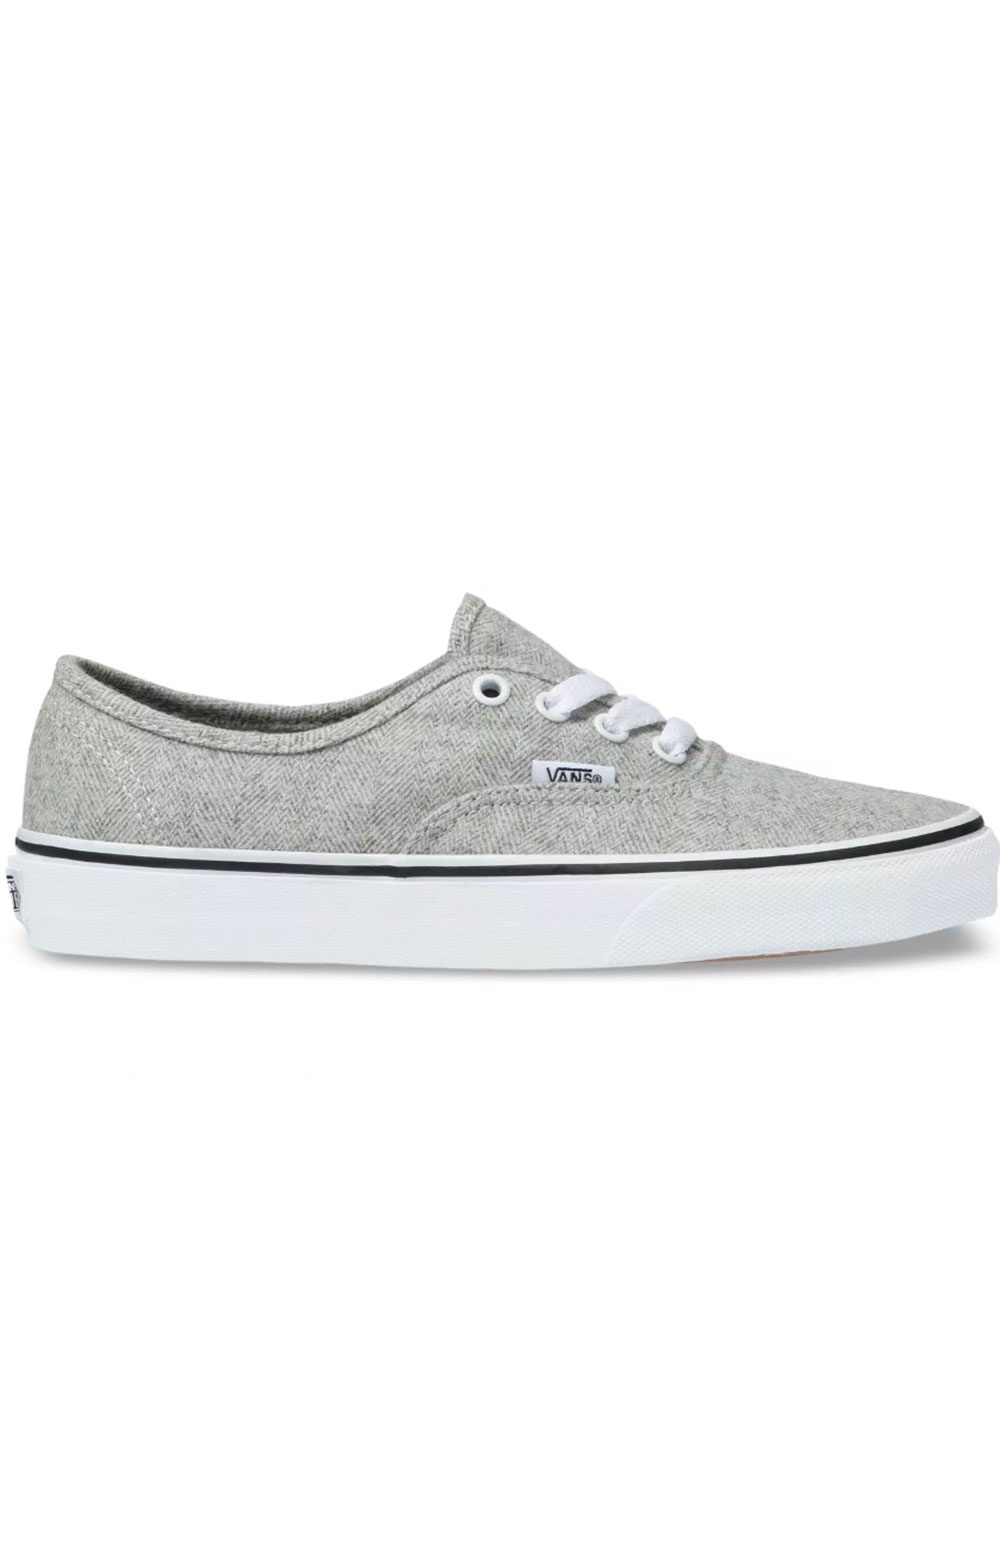 (Z5IV92) Herringbone Authentic Shoe - White Asparagus